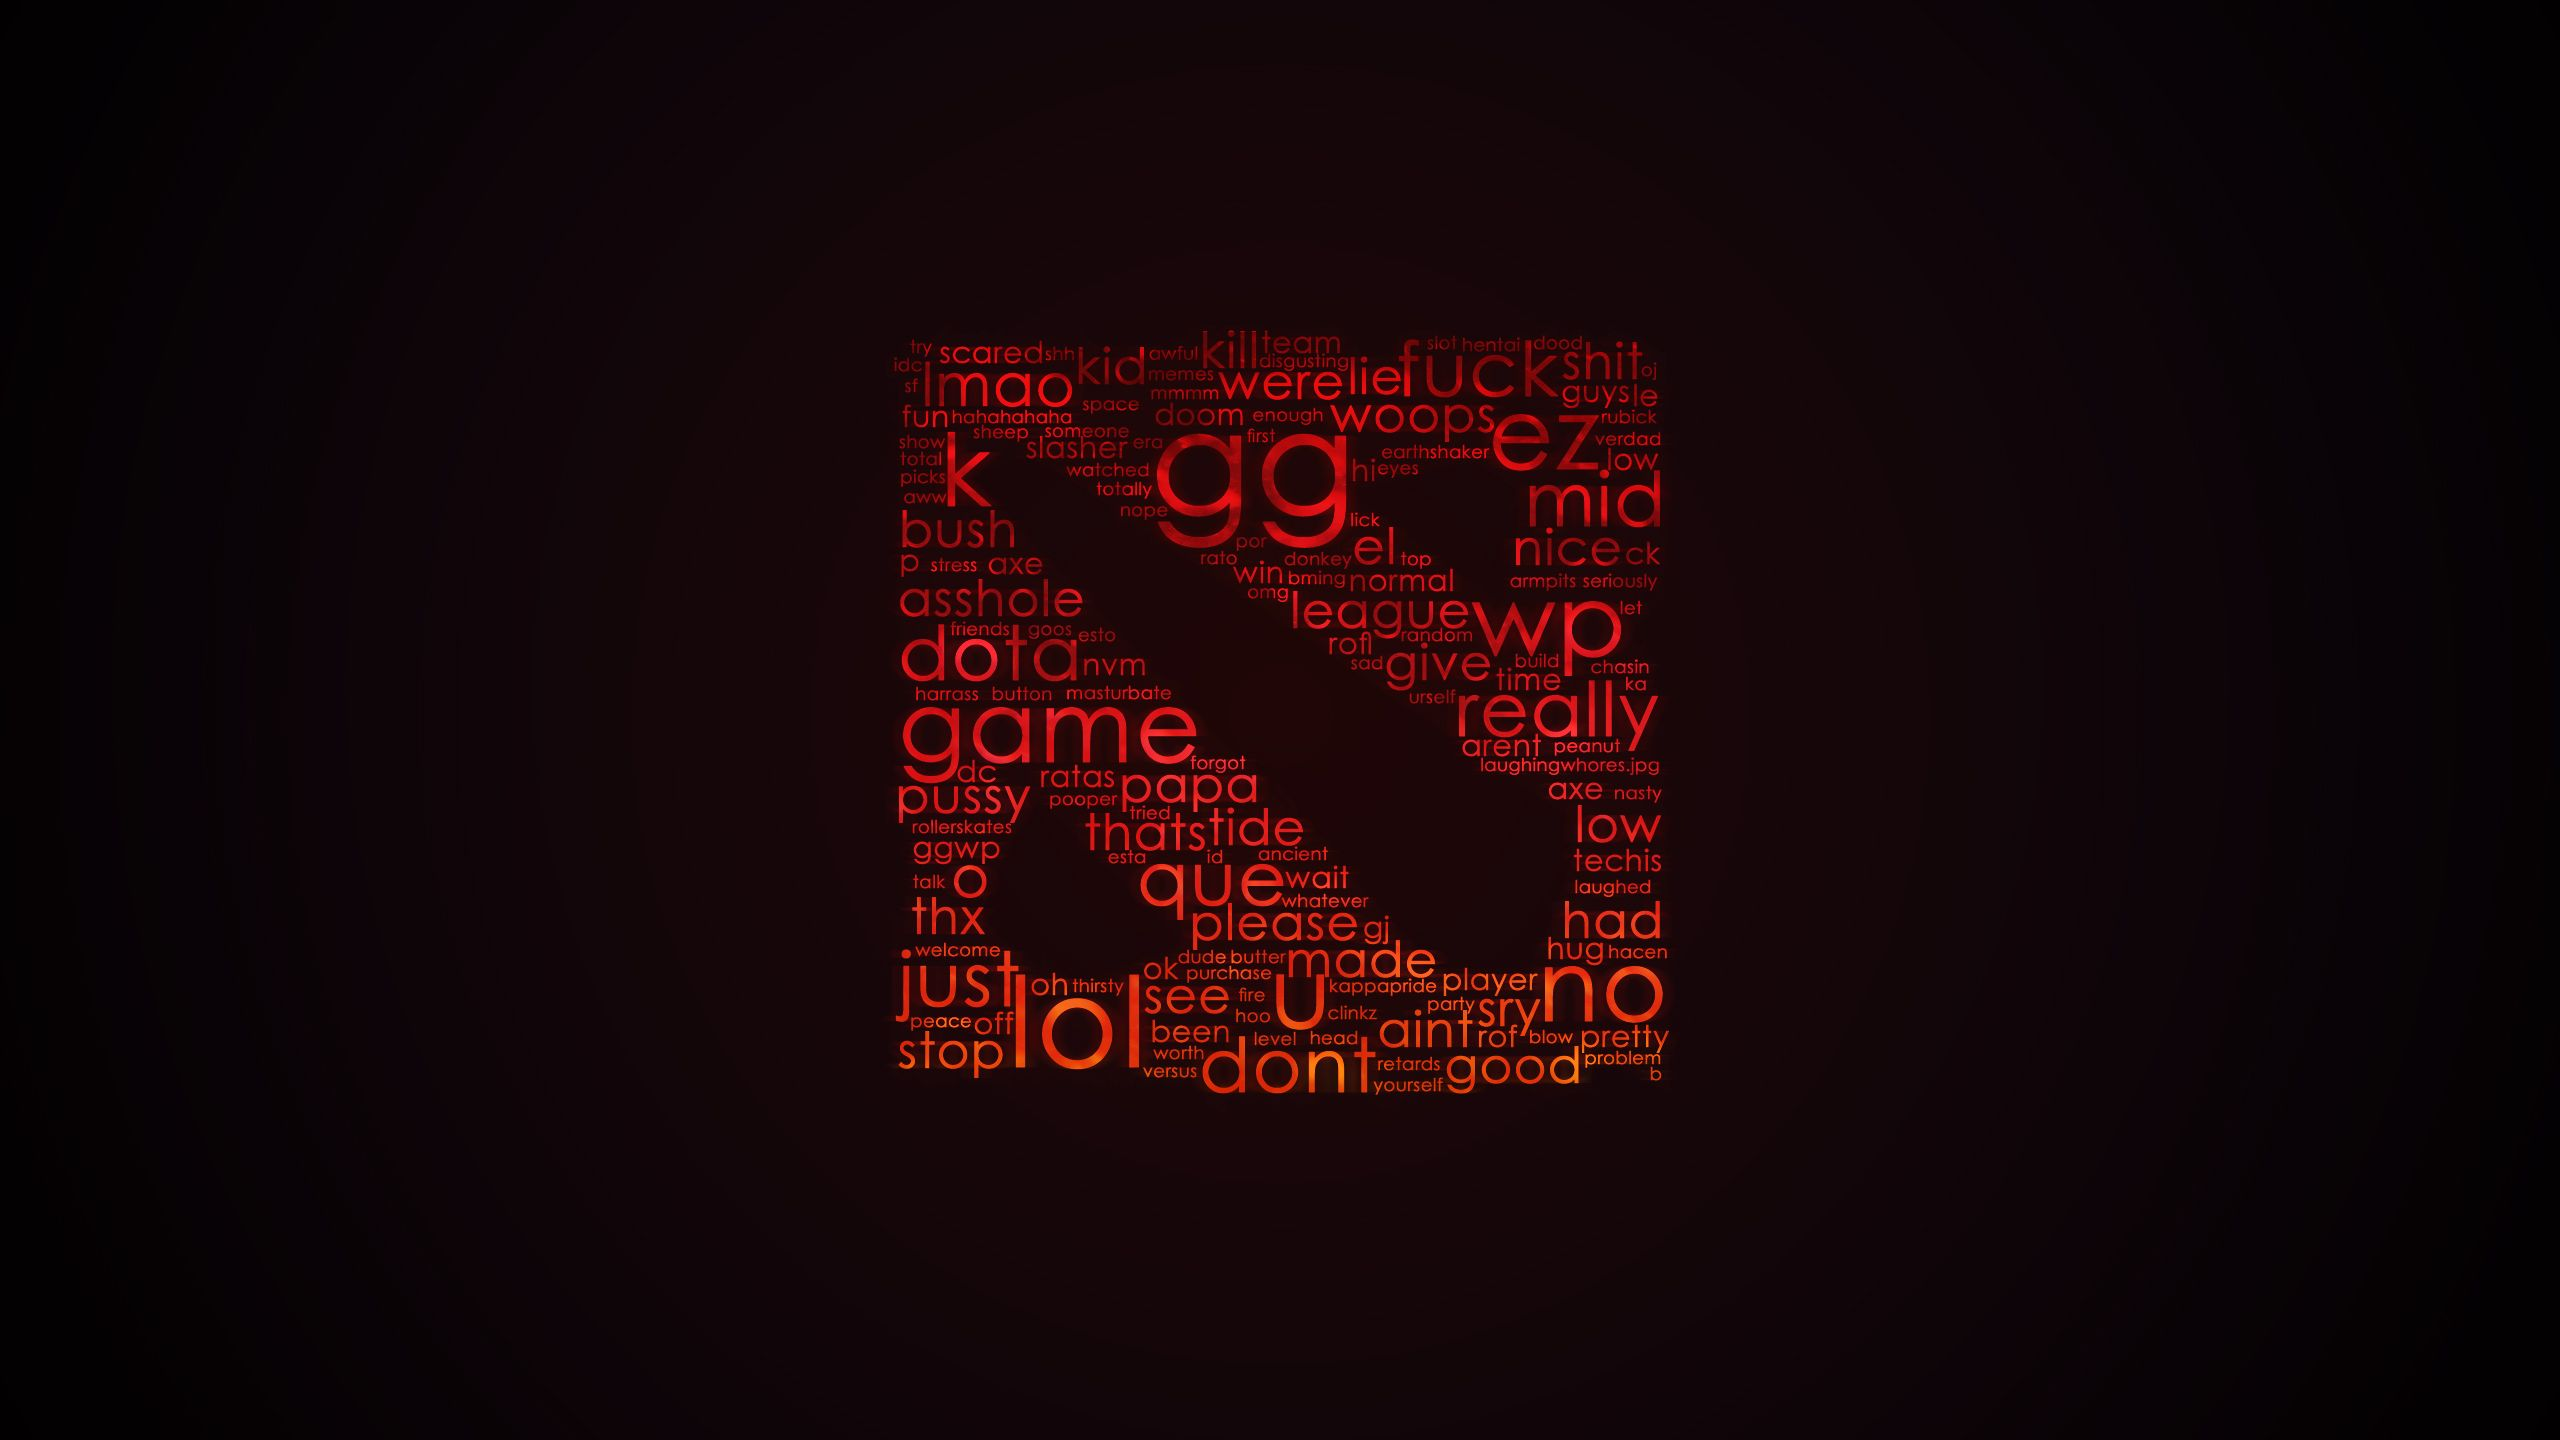 dota 2 logo wallpaper for android sdeerwallpaper games to play